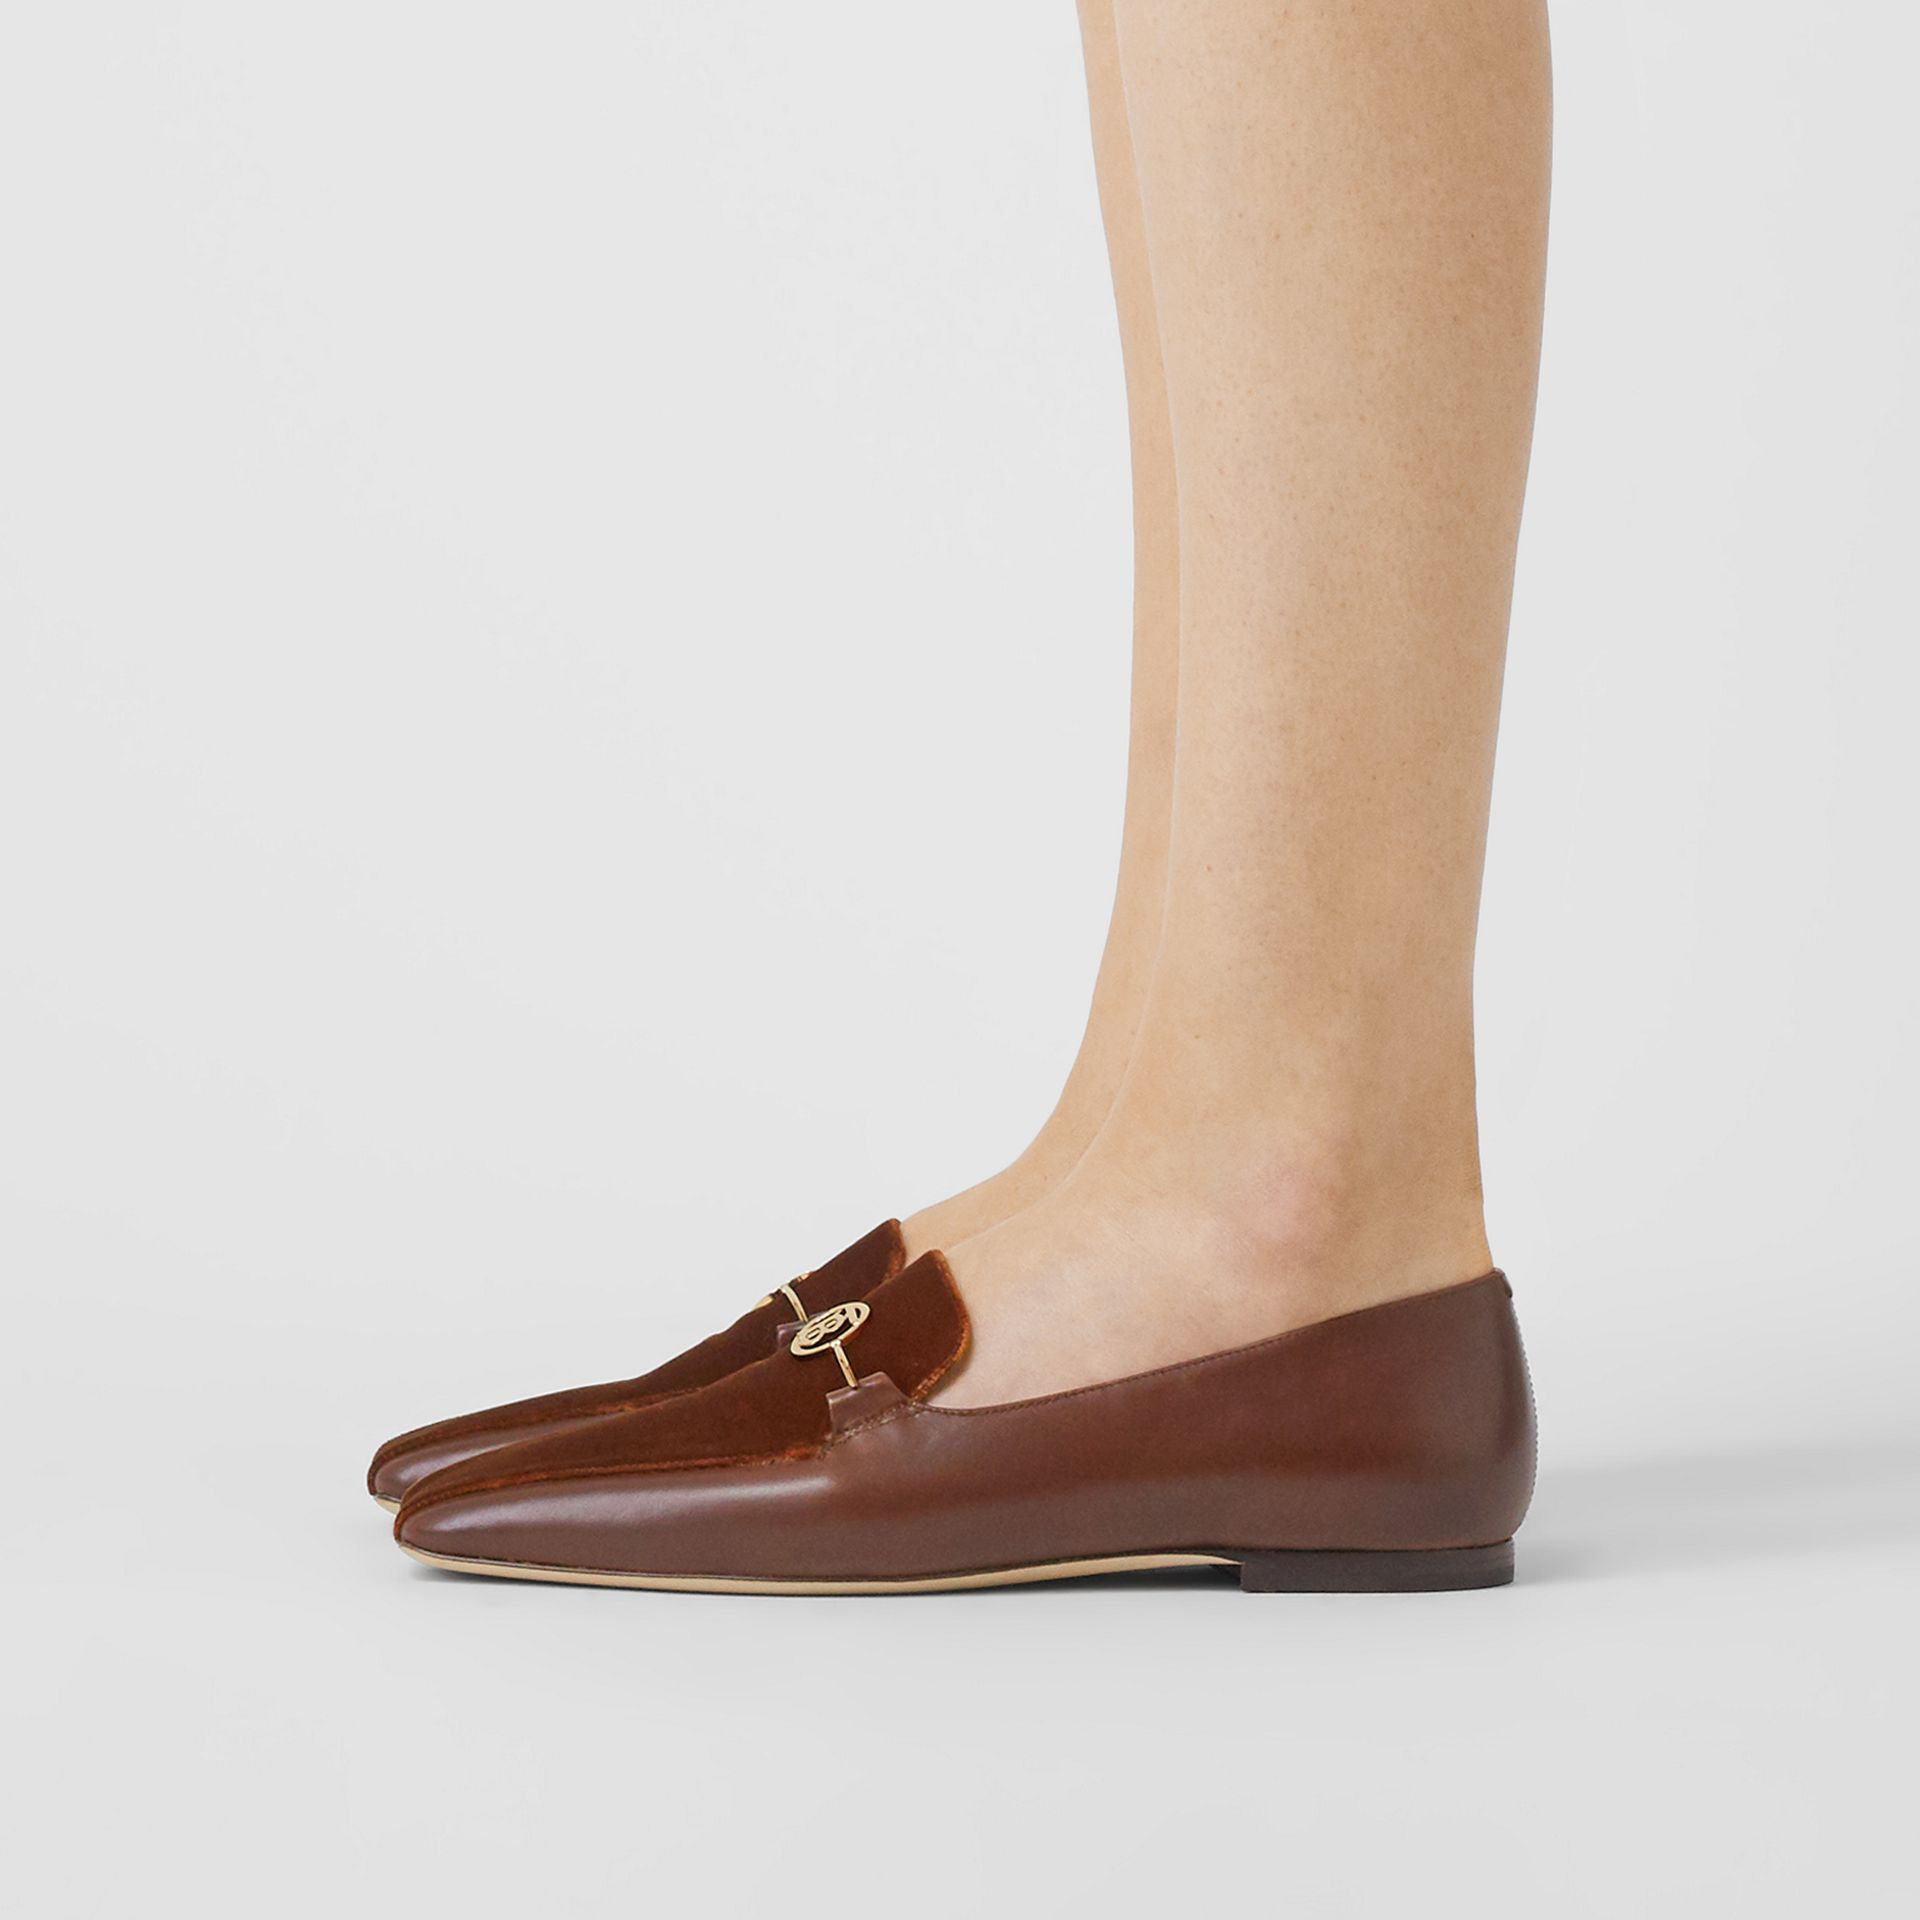 Monogram Motif Velvet and Leather Loafers in Dark Chocolate/tan - Women | Burberry Singapore - gallery image 2